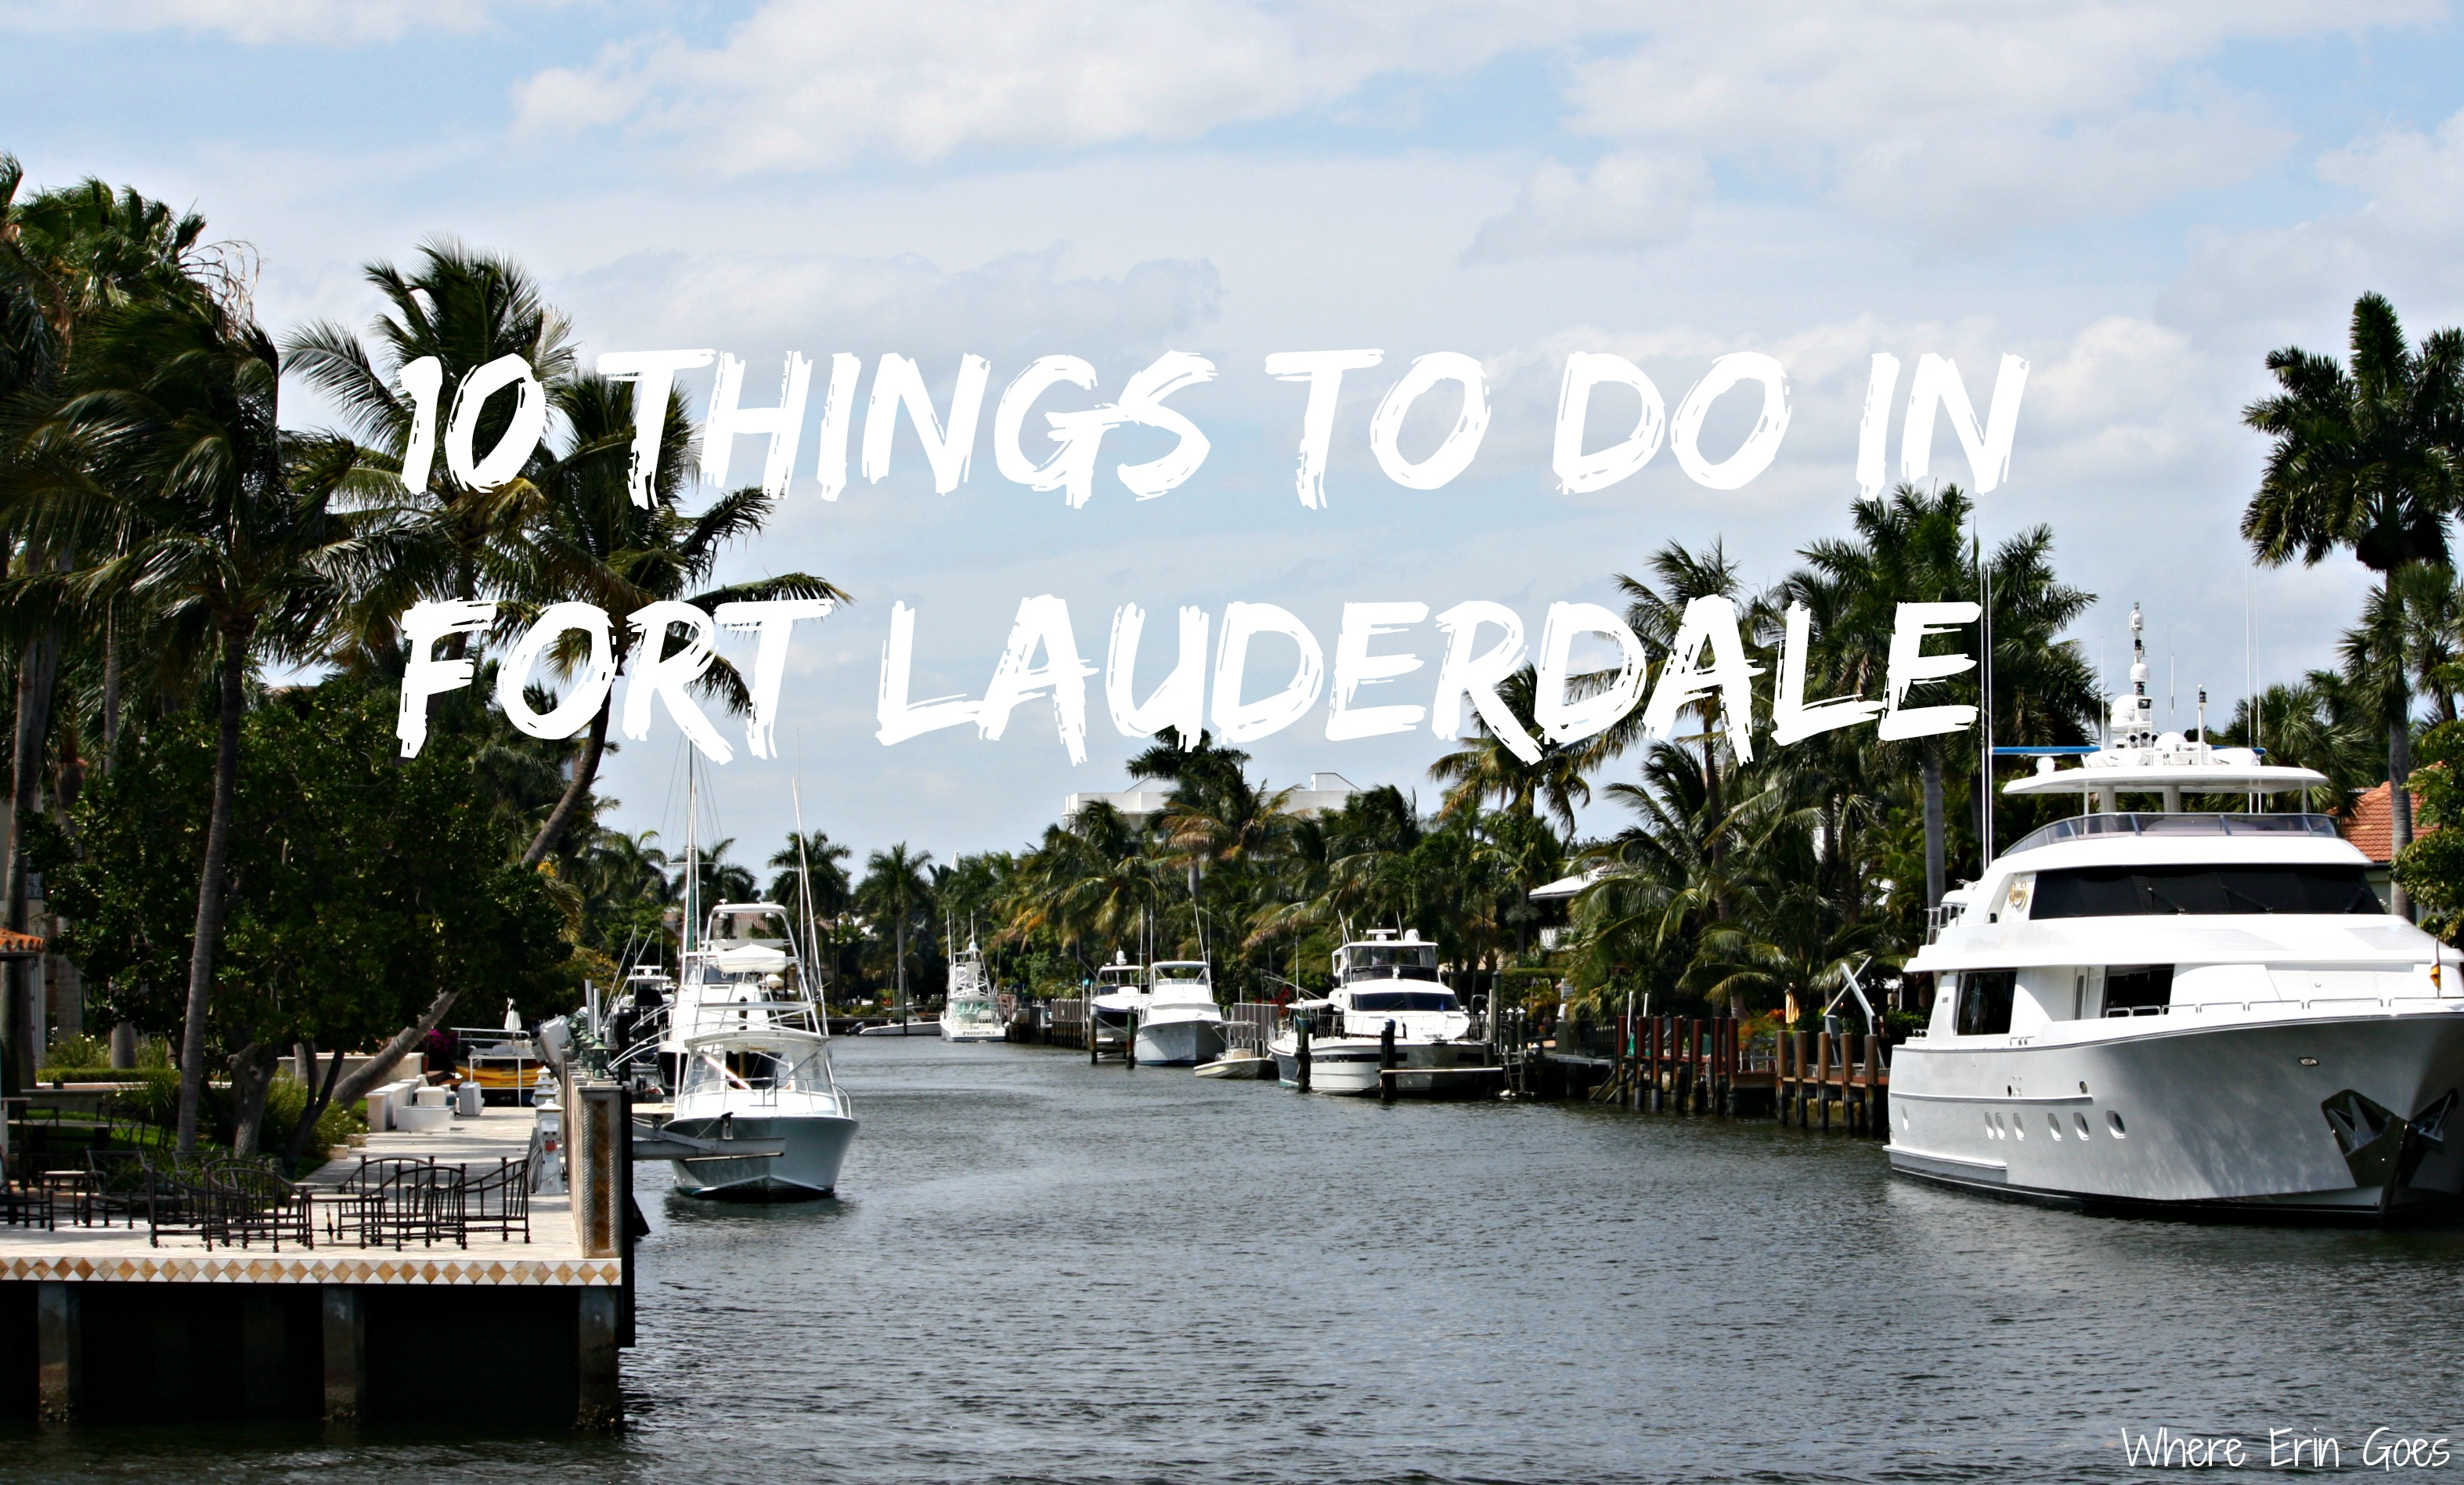 Fort Lauderdale Tours Attractions Everglades Tours Autos